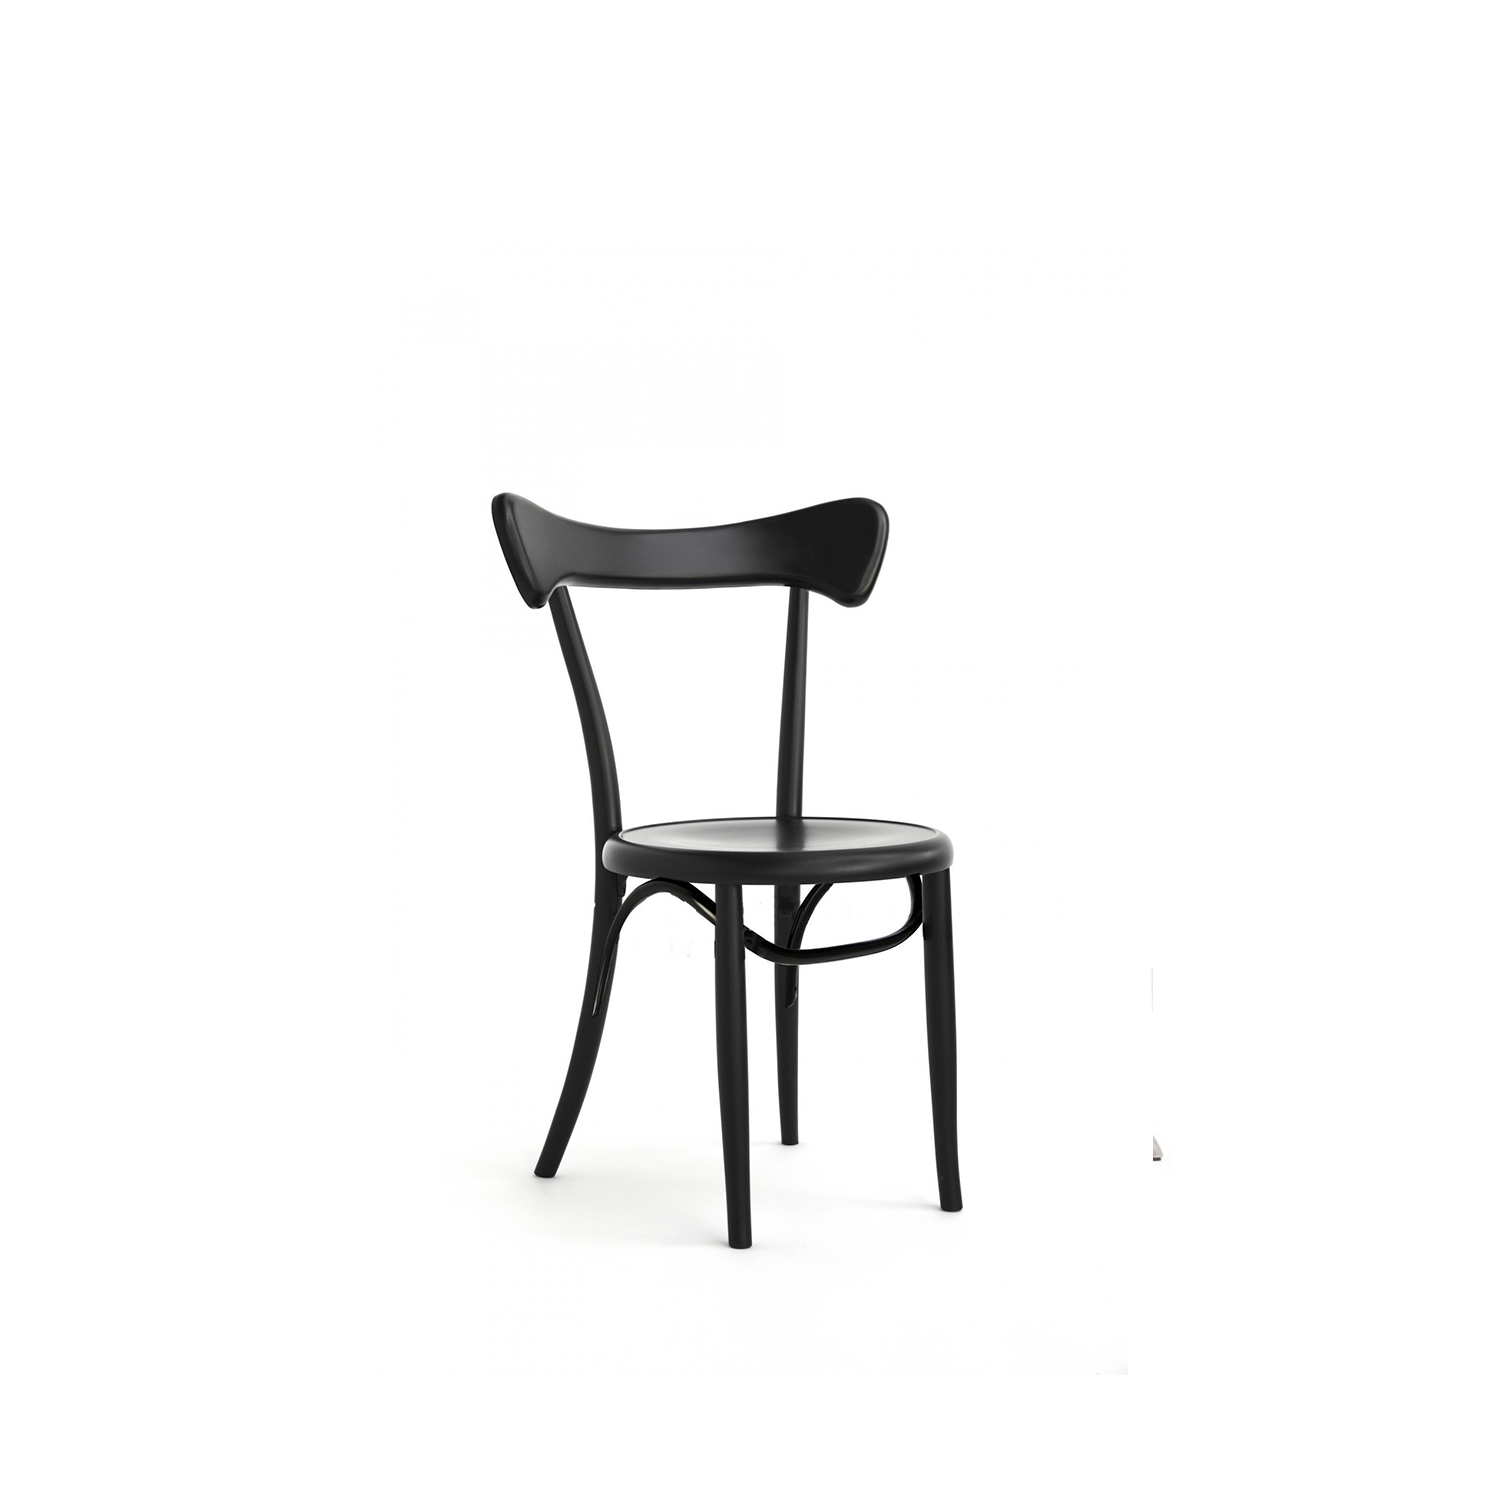 Black Cafestuhl Chair - This elegant chair combines the traditional bent beechwood of Viennese-styled furniture with an ergonomic and sinuous backrest. Either arranged in multiples or combined with the Bodystuhl and the Bistrostuhl around a modern table, this exquisite chair will imbue any home or elegant restaurant with character and refined taste. | Matter of Stuff